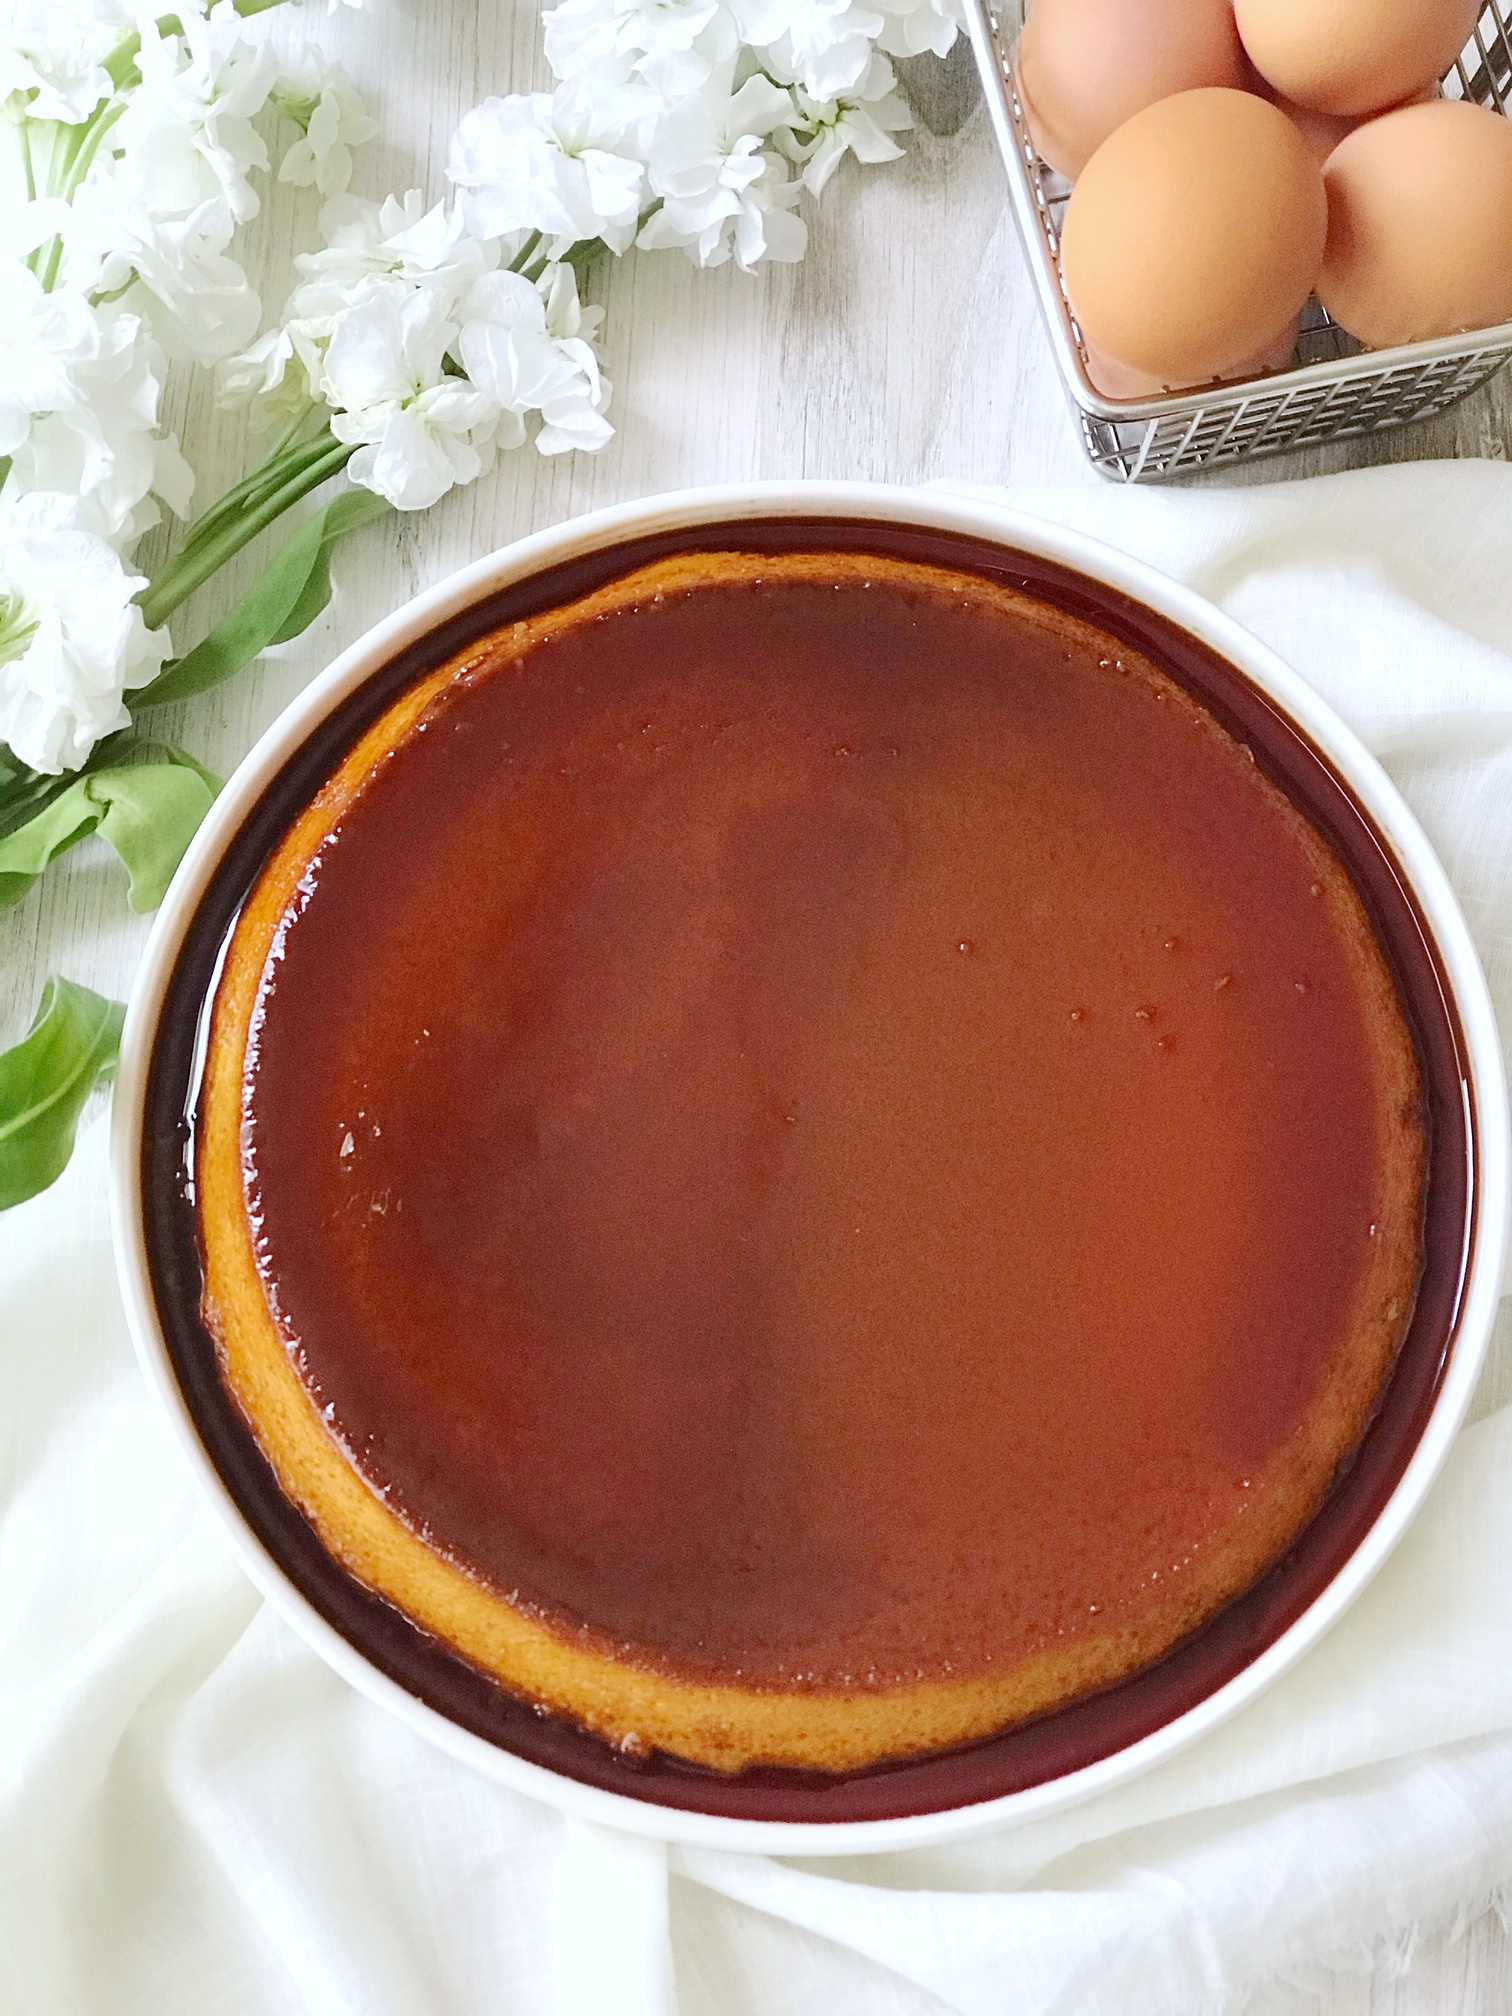 Mexican flan on large white plat with caramel sauce. Brown eggs and white flowers.